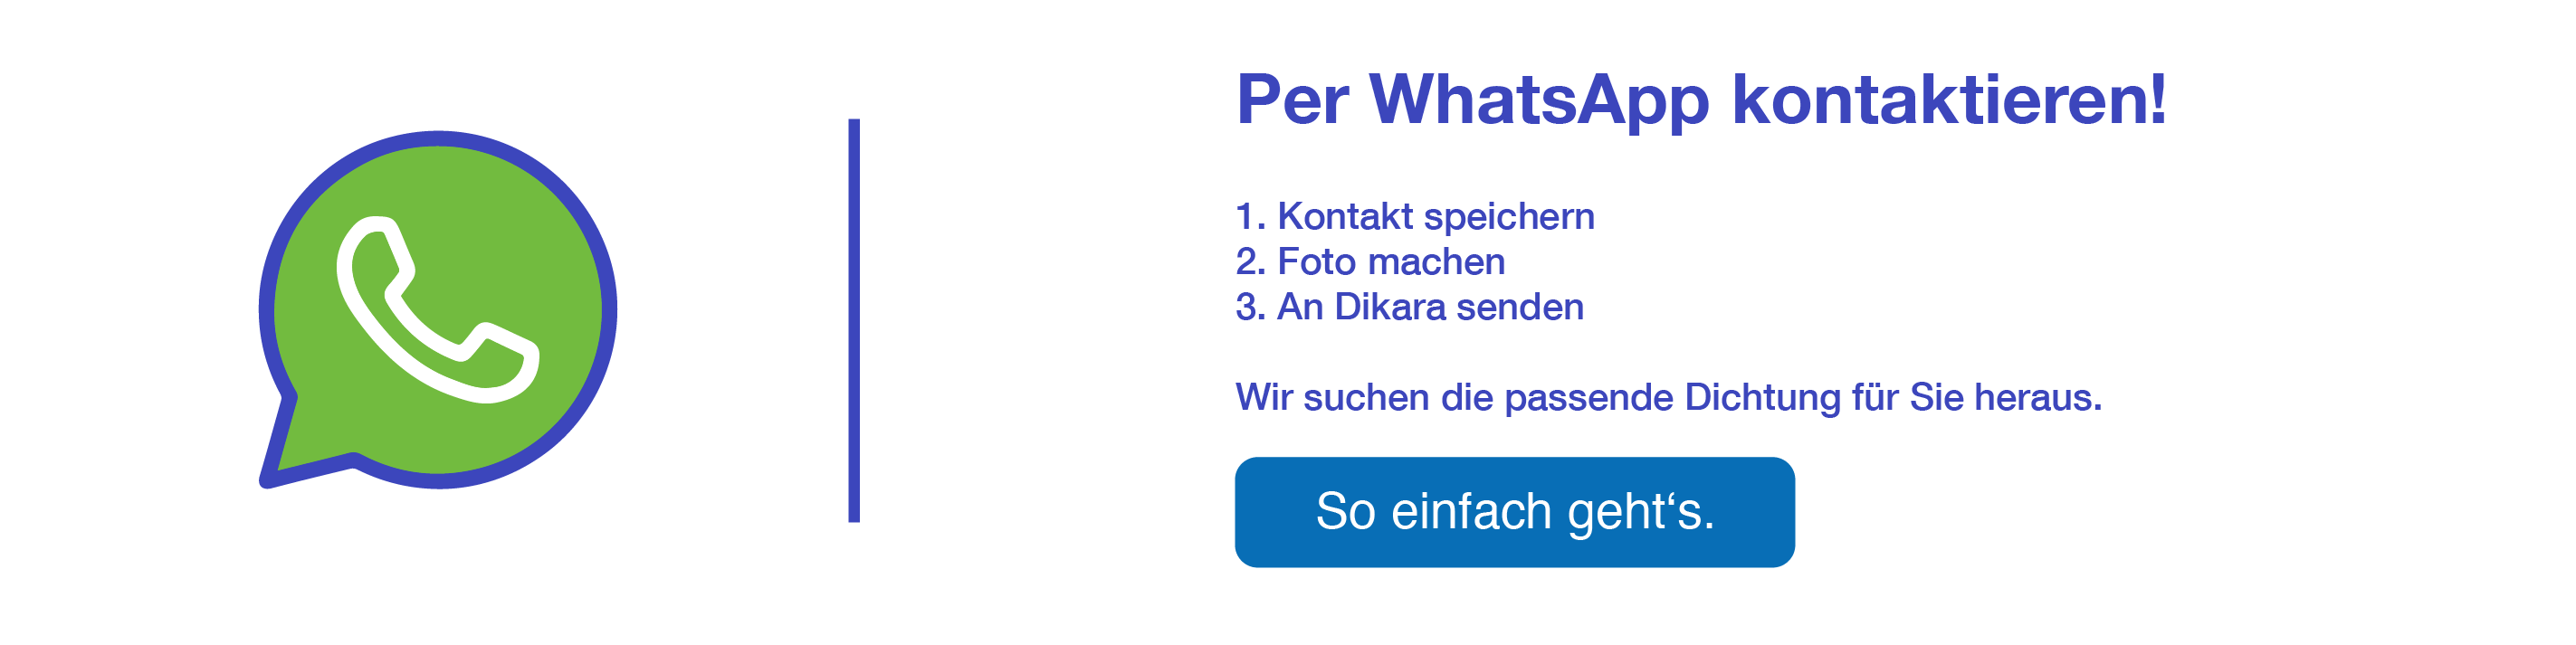 WhatsApp Call-to-Action